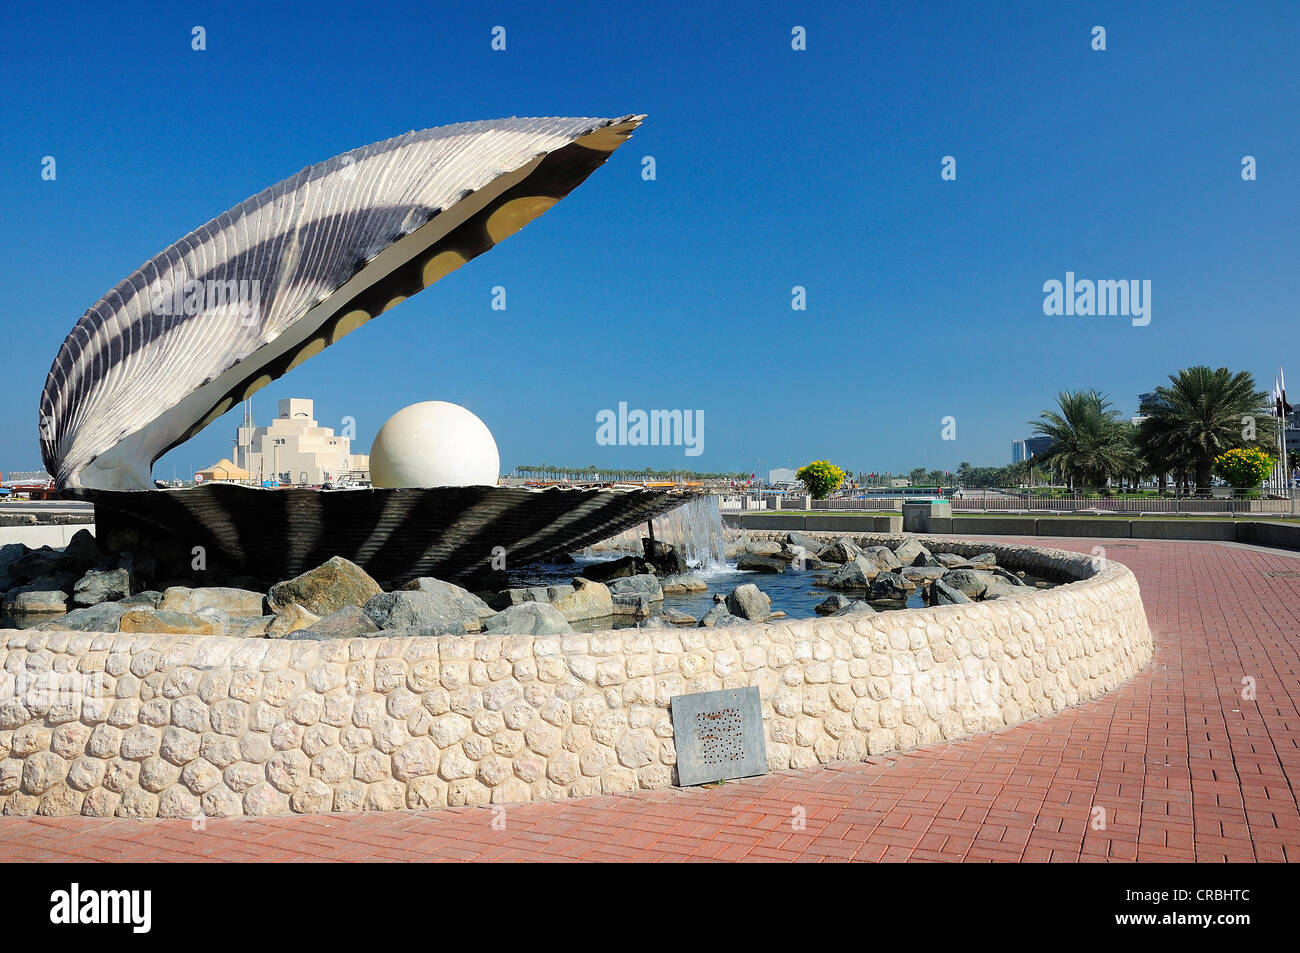 Pearl and Oyster Fountain, Corniche, Doha, Qatar, Middle East - Stock Image